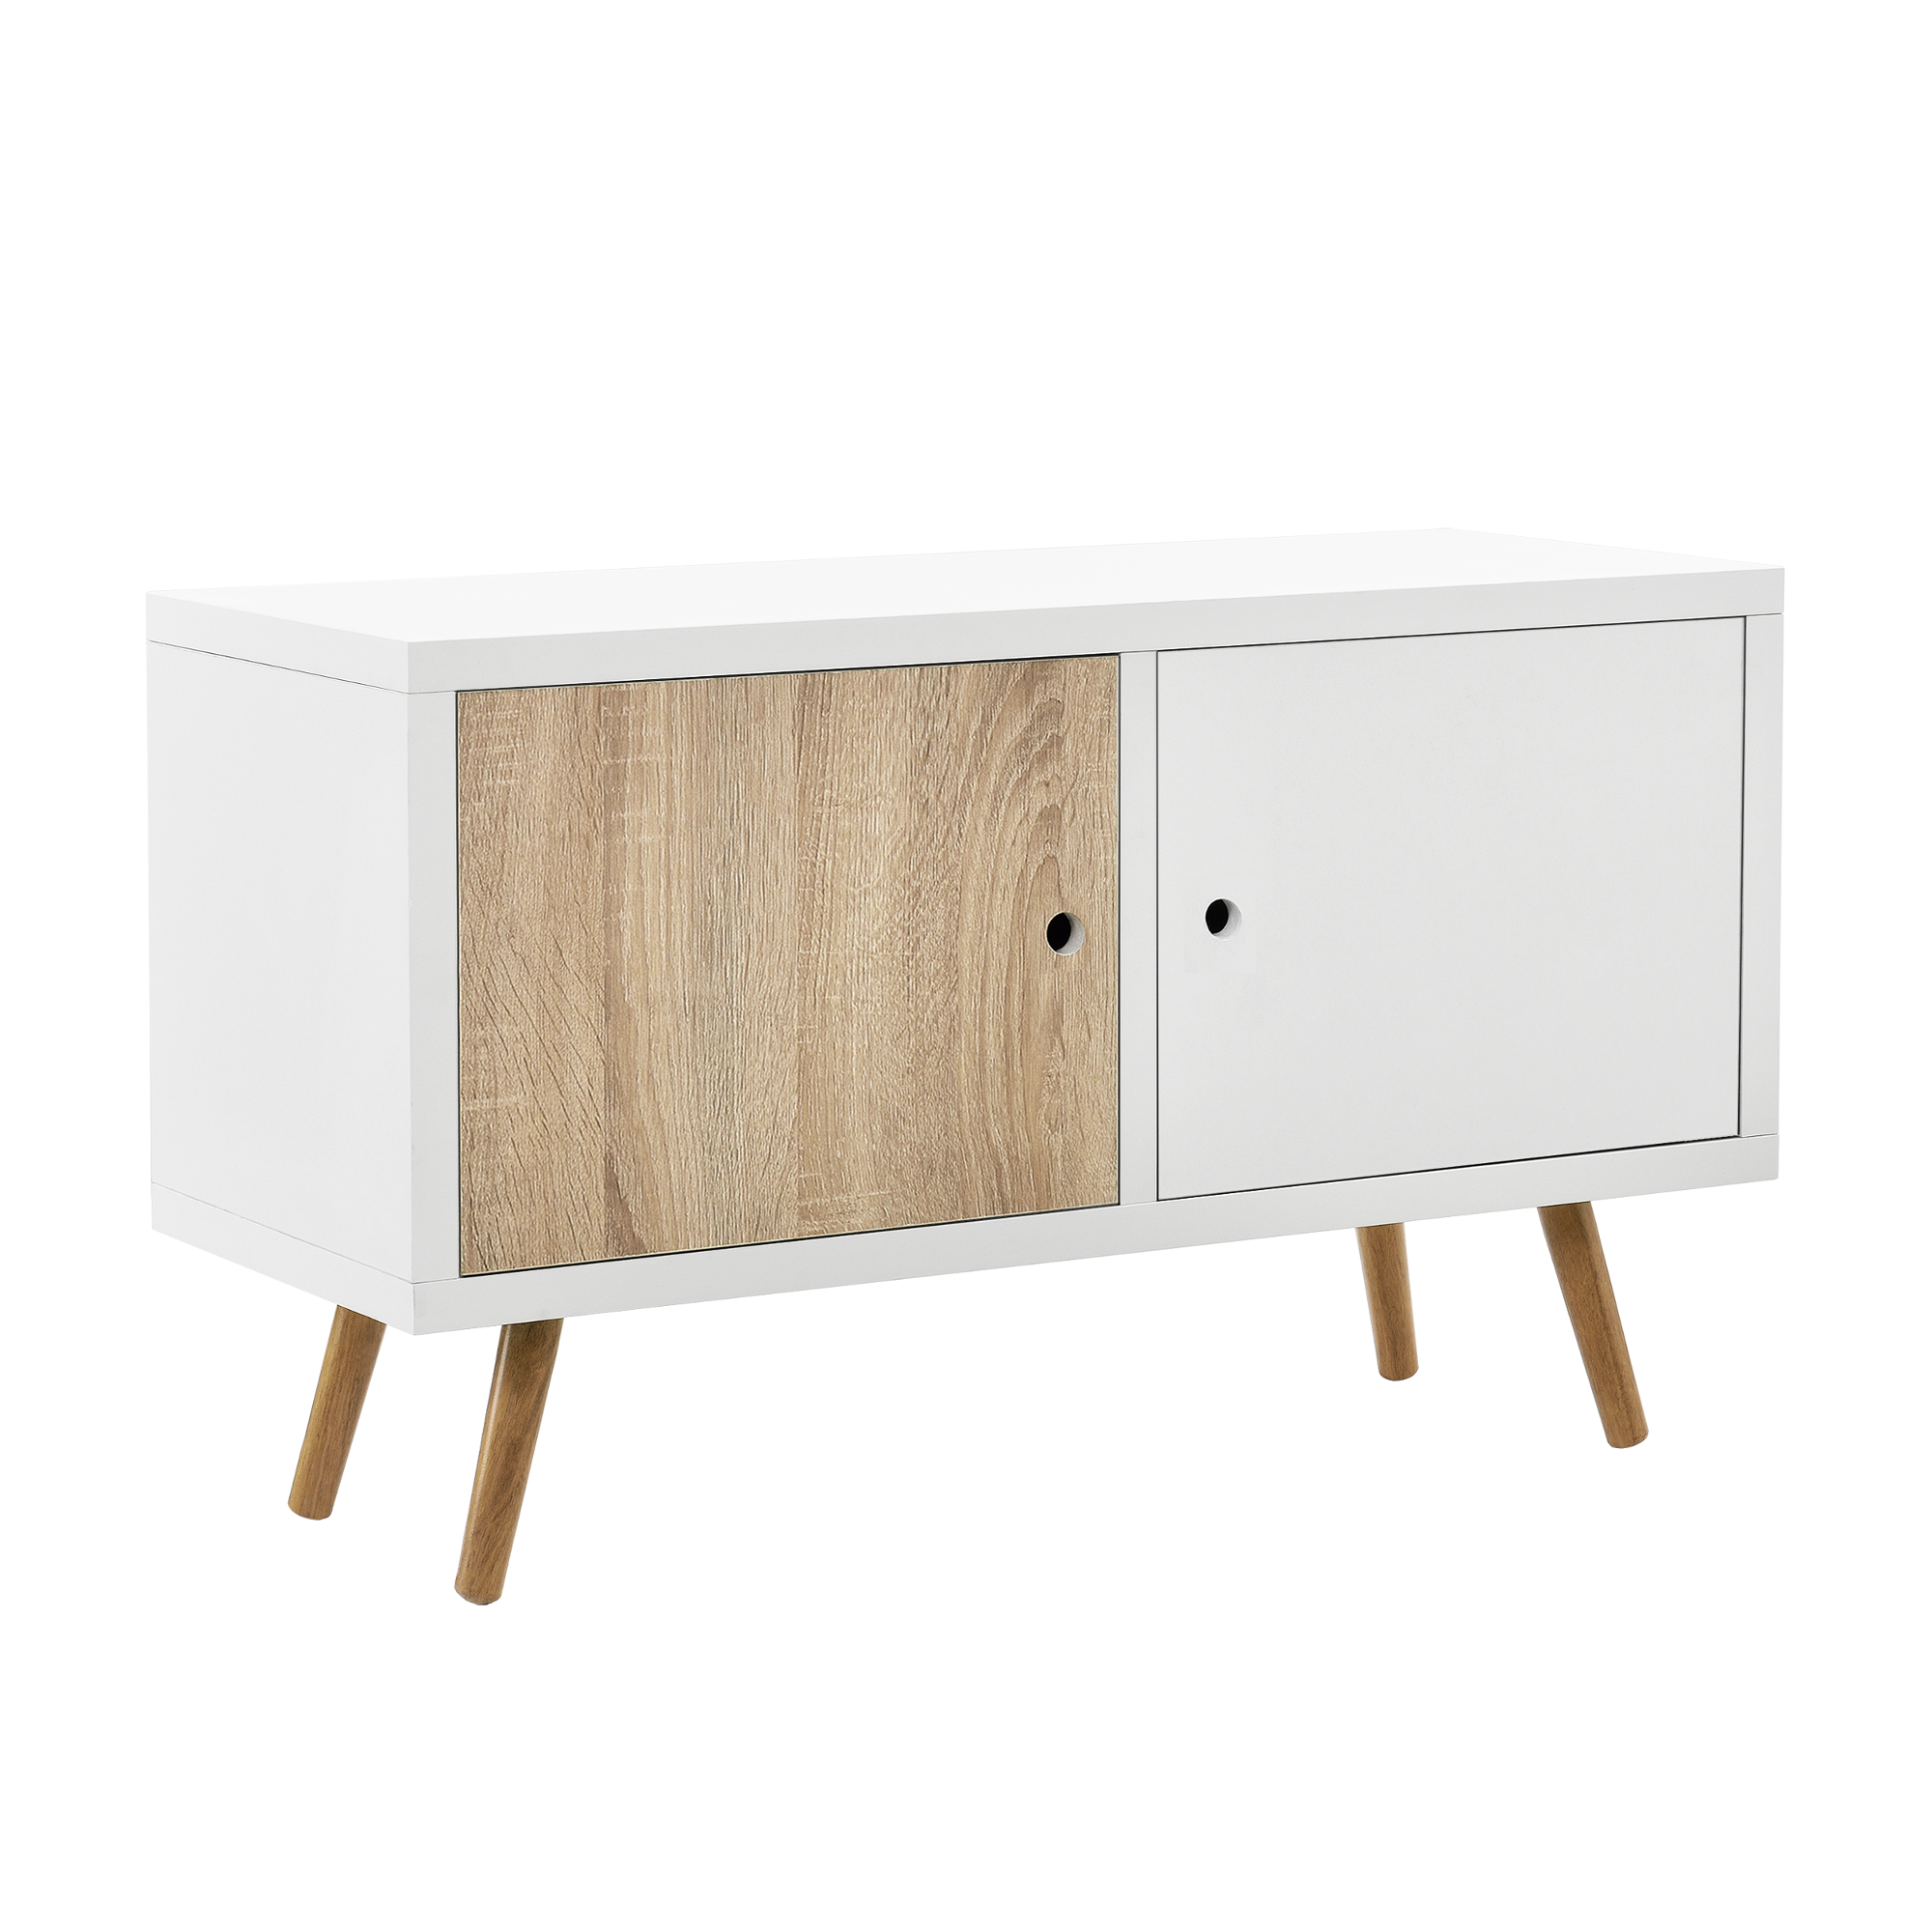 design kommode sideboard schrank beistelltisch konsolentisch tv tisch ebay. Black Bedroom Furniture Sets. Home Design Ideas